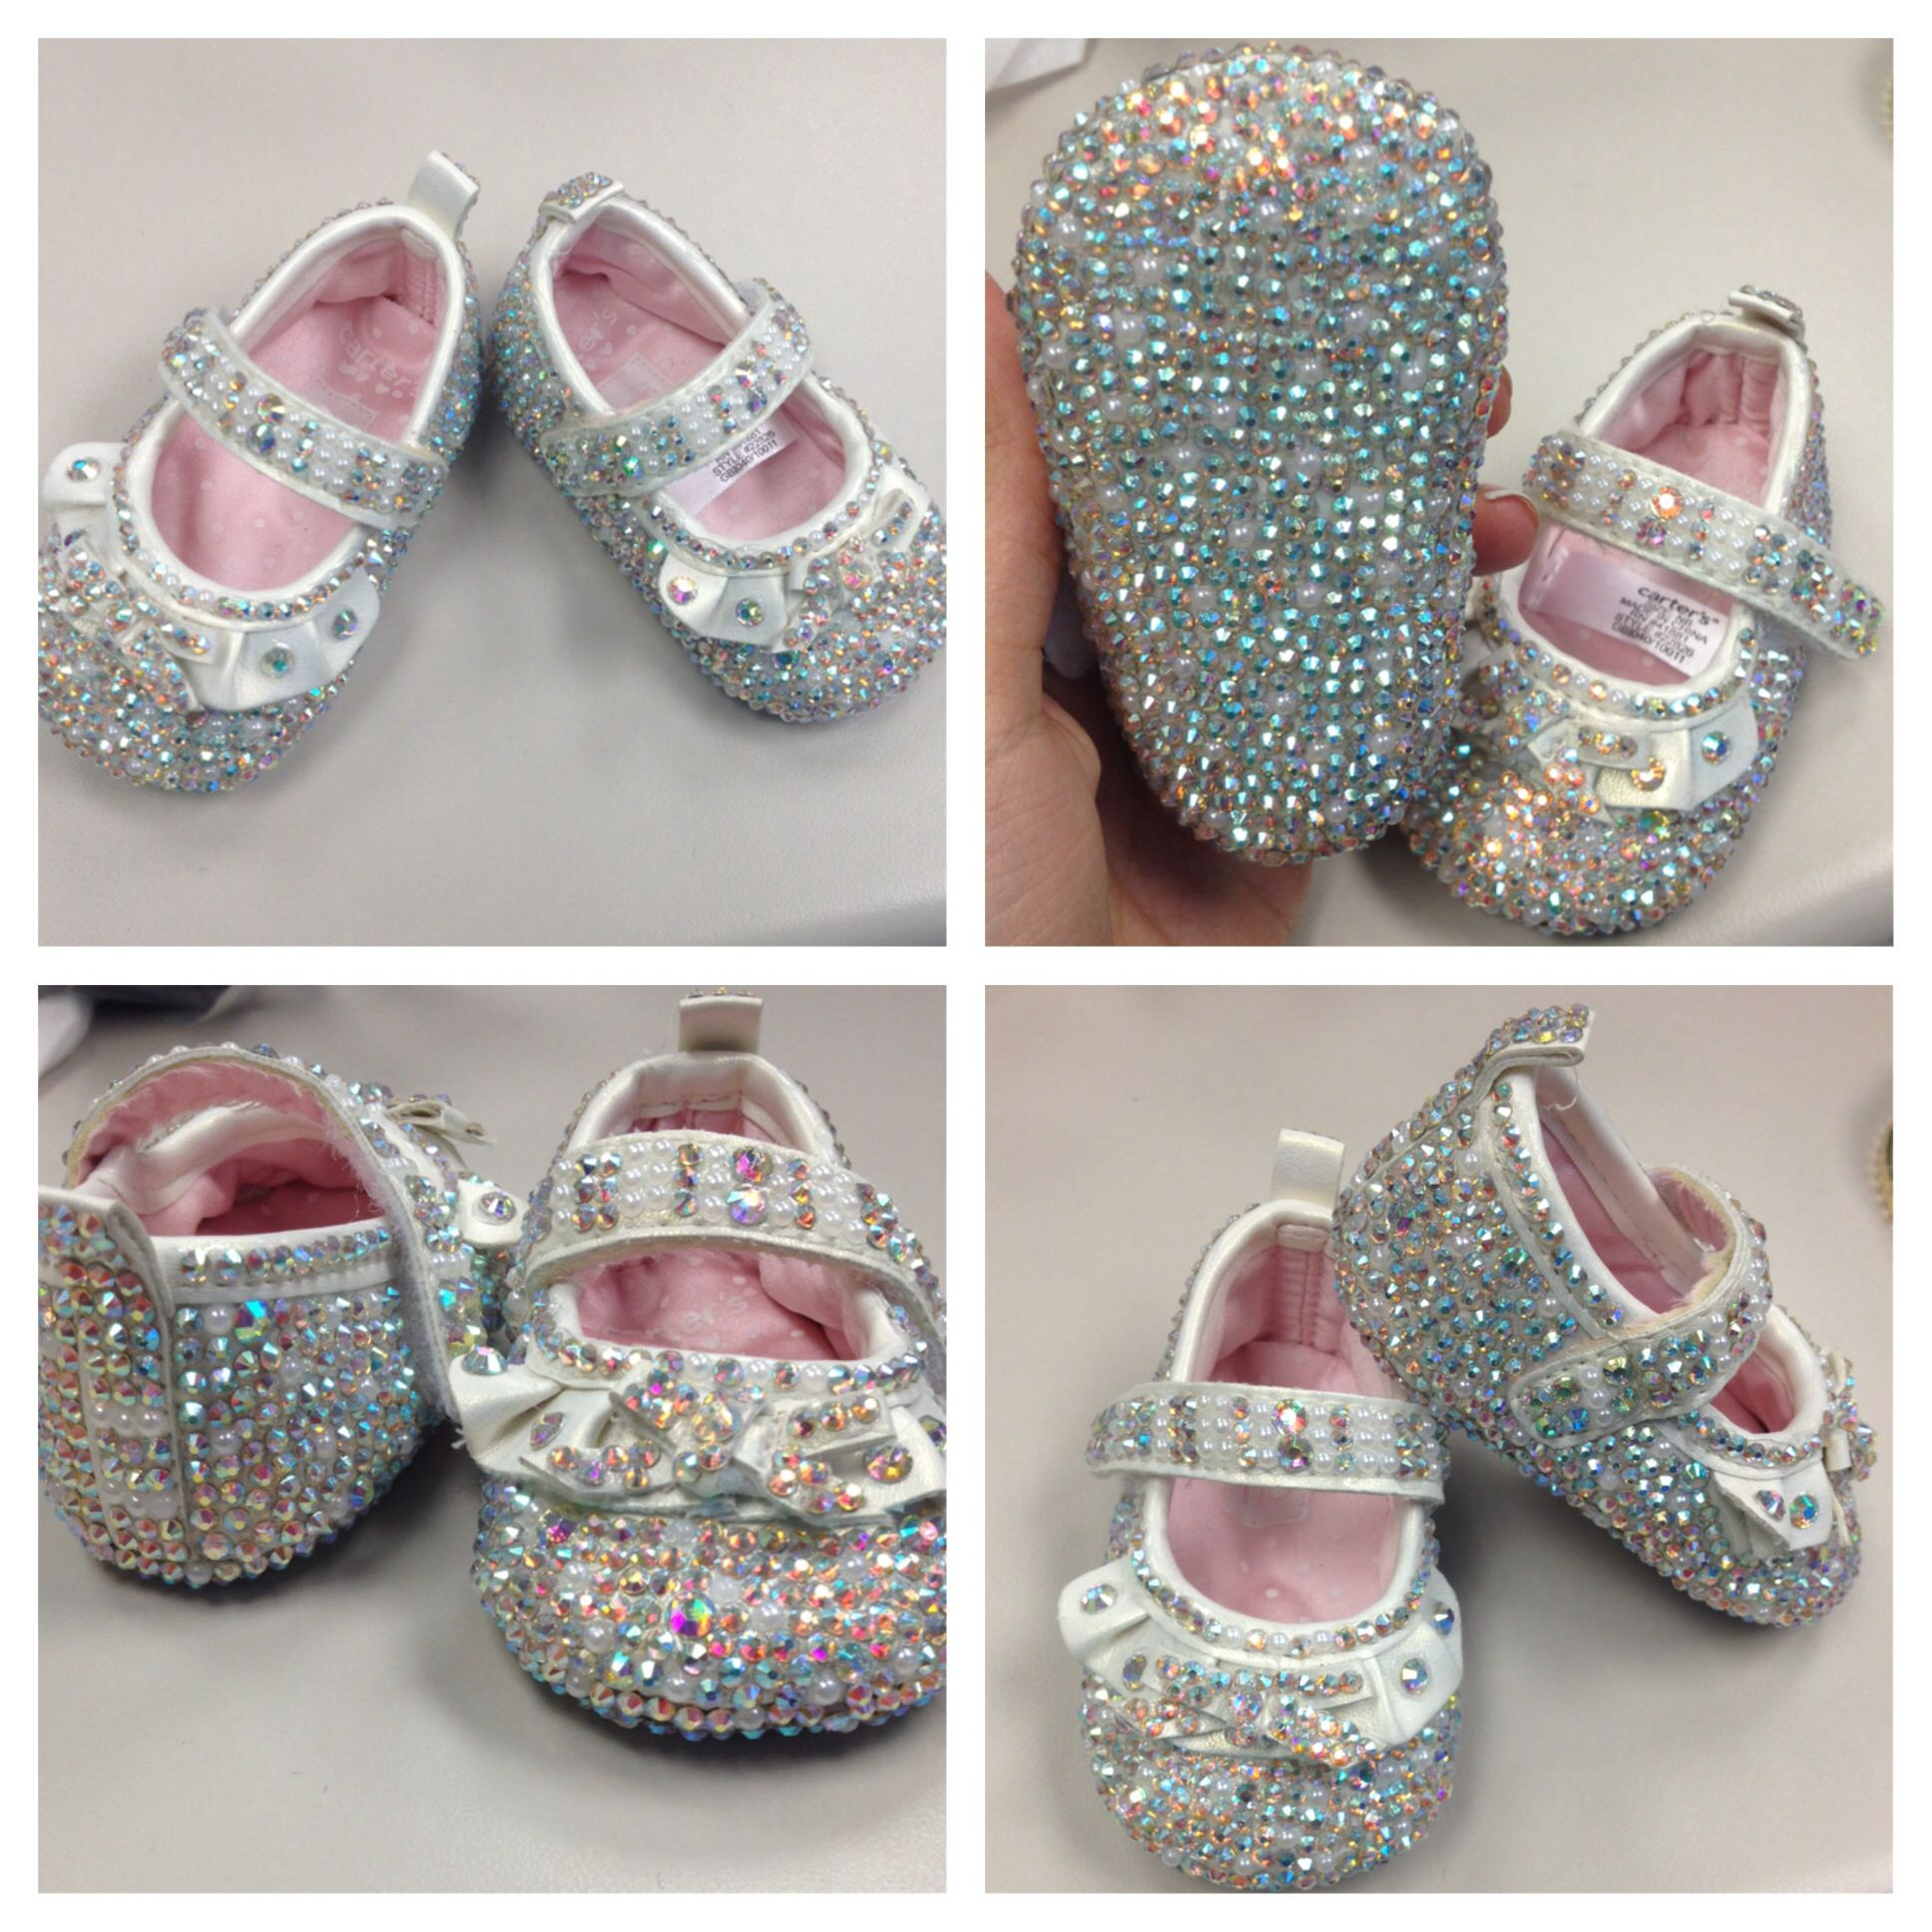 Bedazzled baby shoes For any inquiries email me at doritsemail